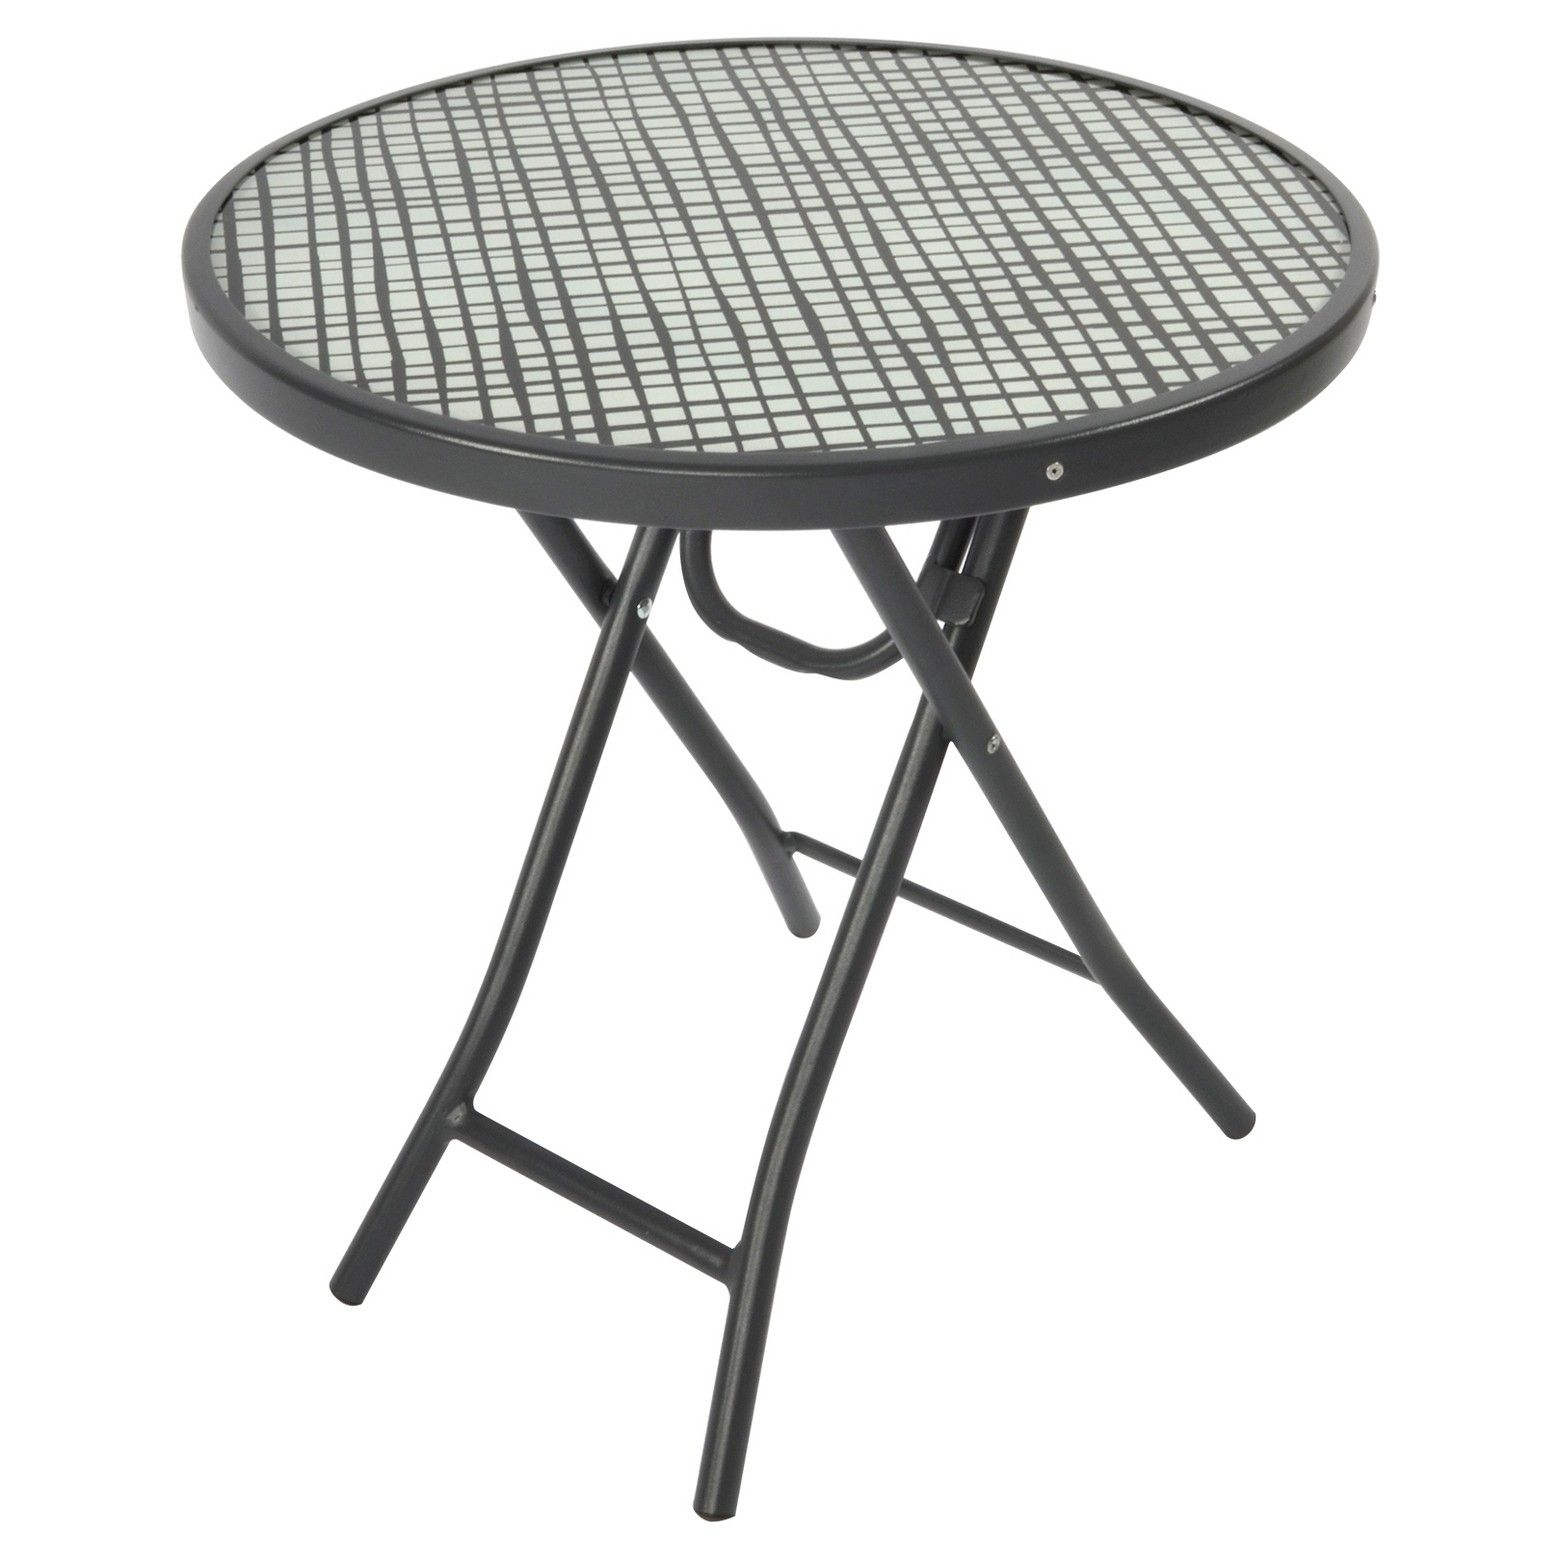 bistro round folding accent table black white pattern room outdoor essentials top legs sheesham side tile patio furniture astoria grand bedroom sets long narrow farmhouse dining